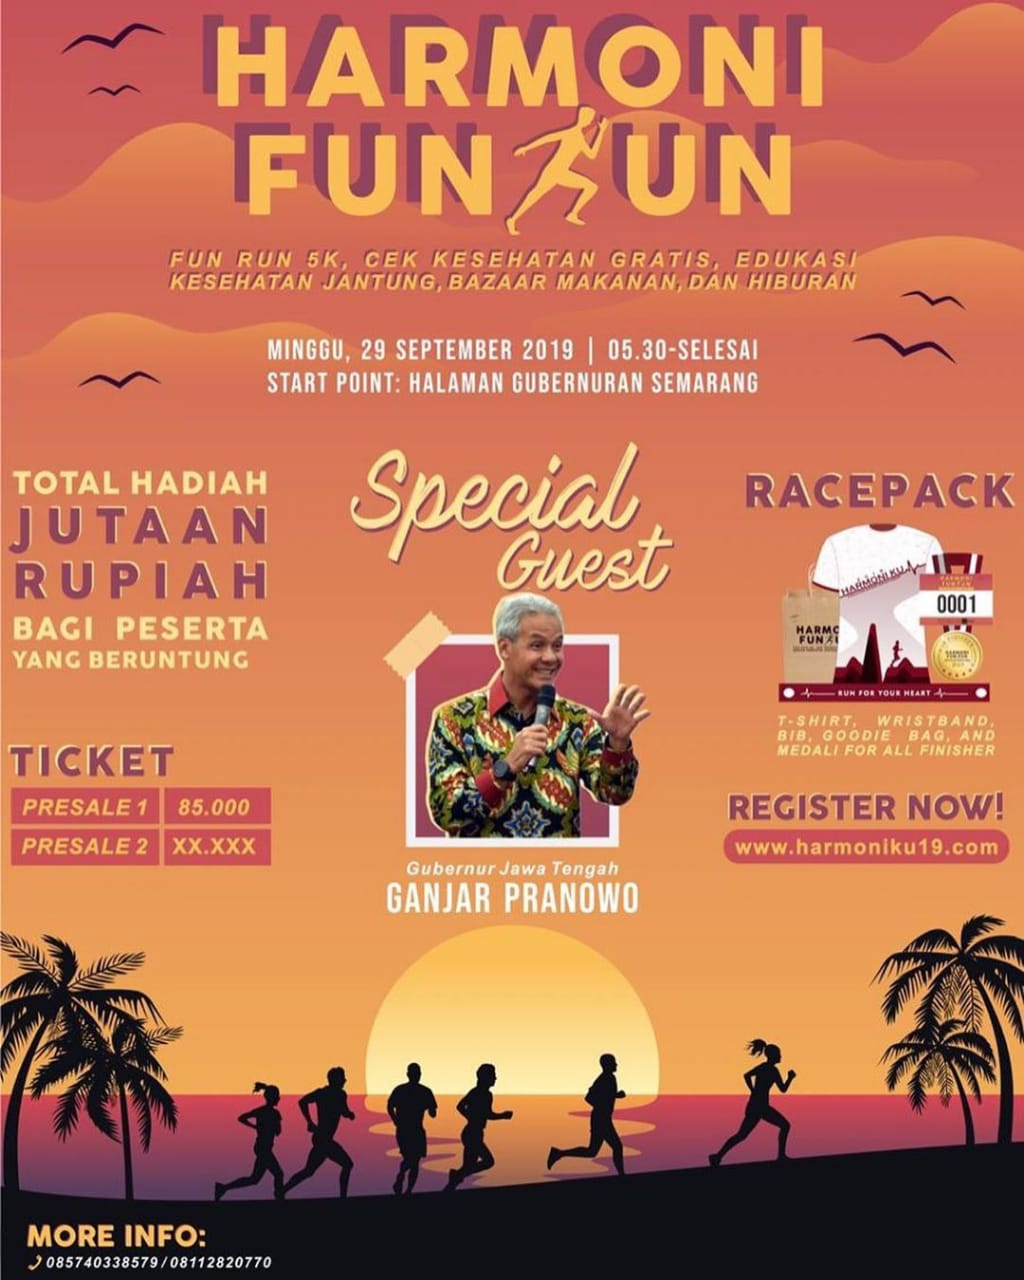 Events Semarang : Harmoni Fun Run 2019